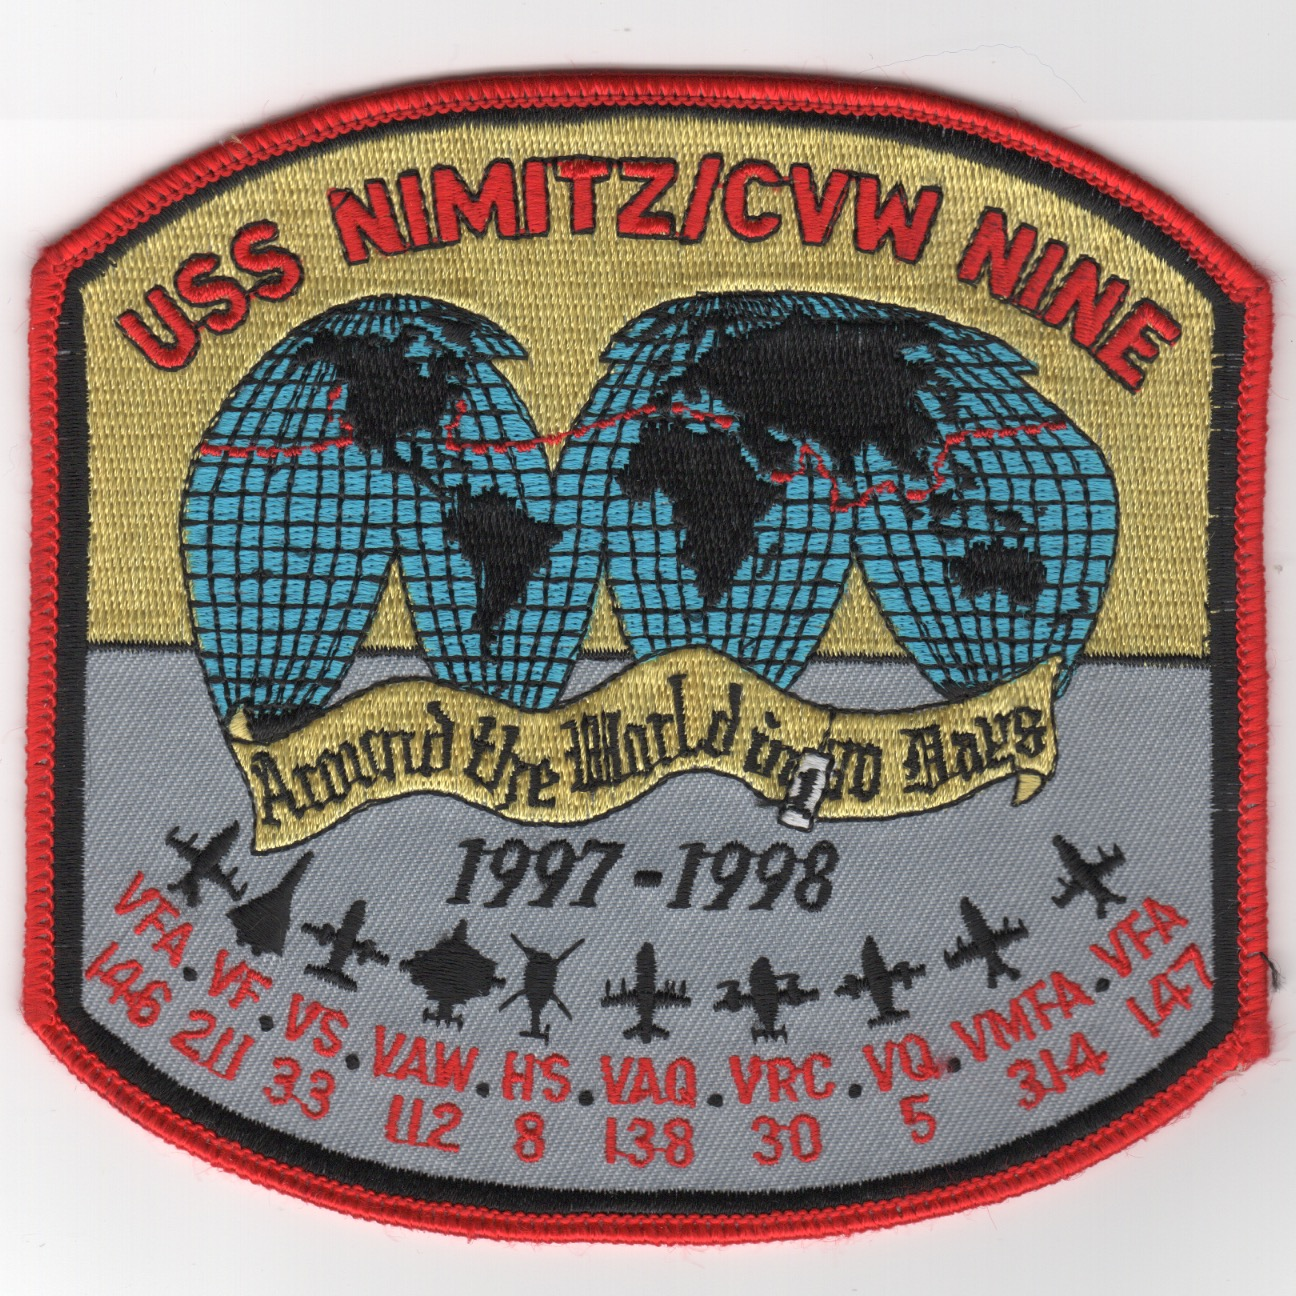 469) CVN-68/CVW-9 1997-98 'WORLD' Cruise Patch